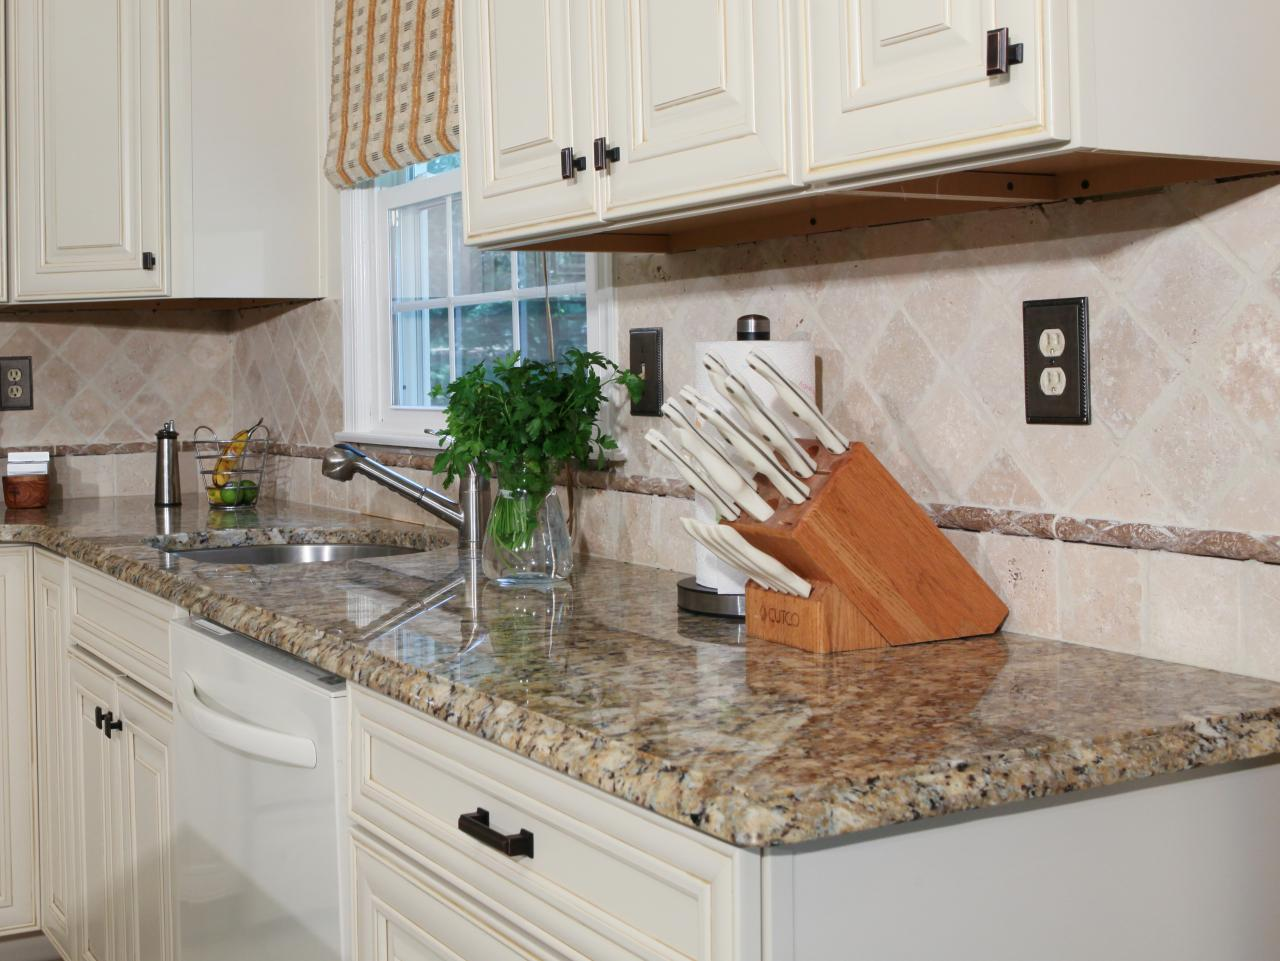 Solid Color Granite Countertops Look Classy And Performing